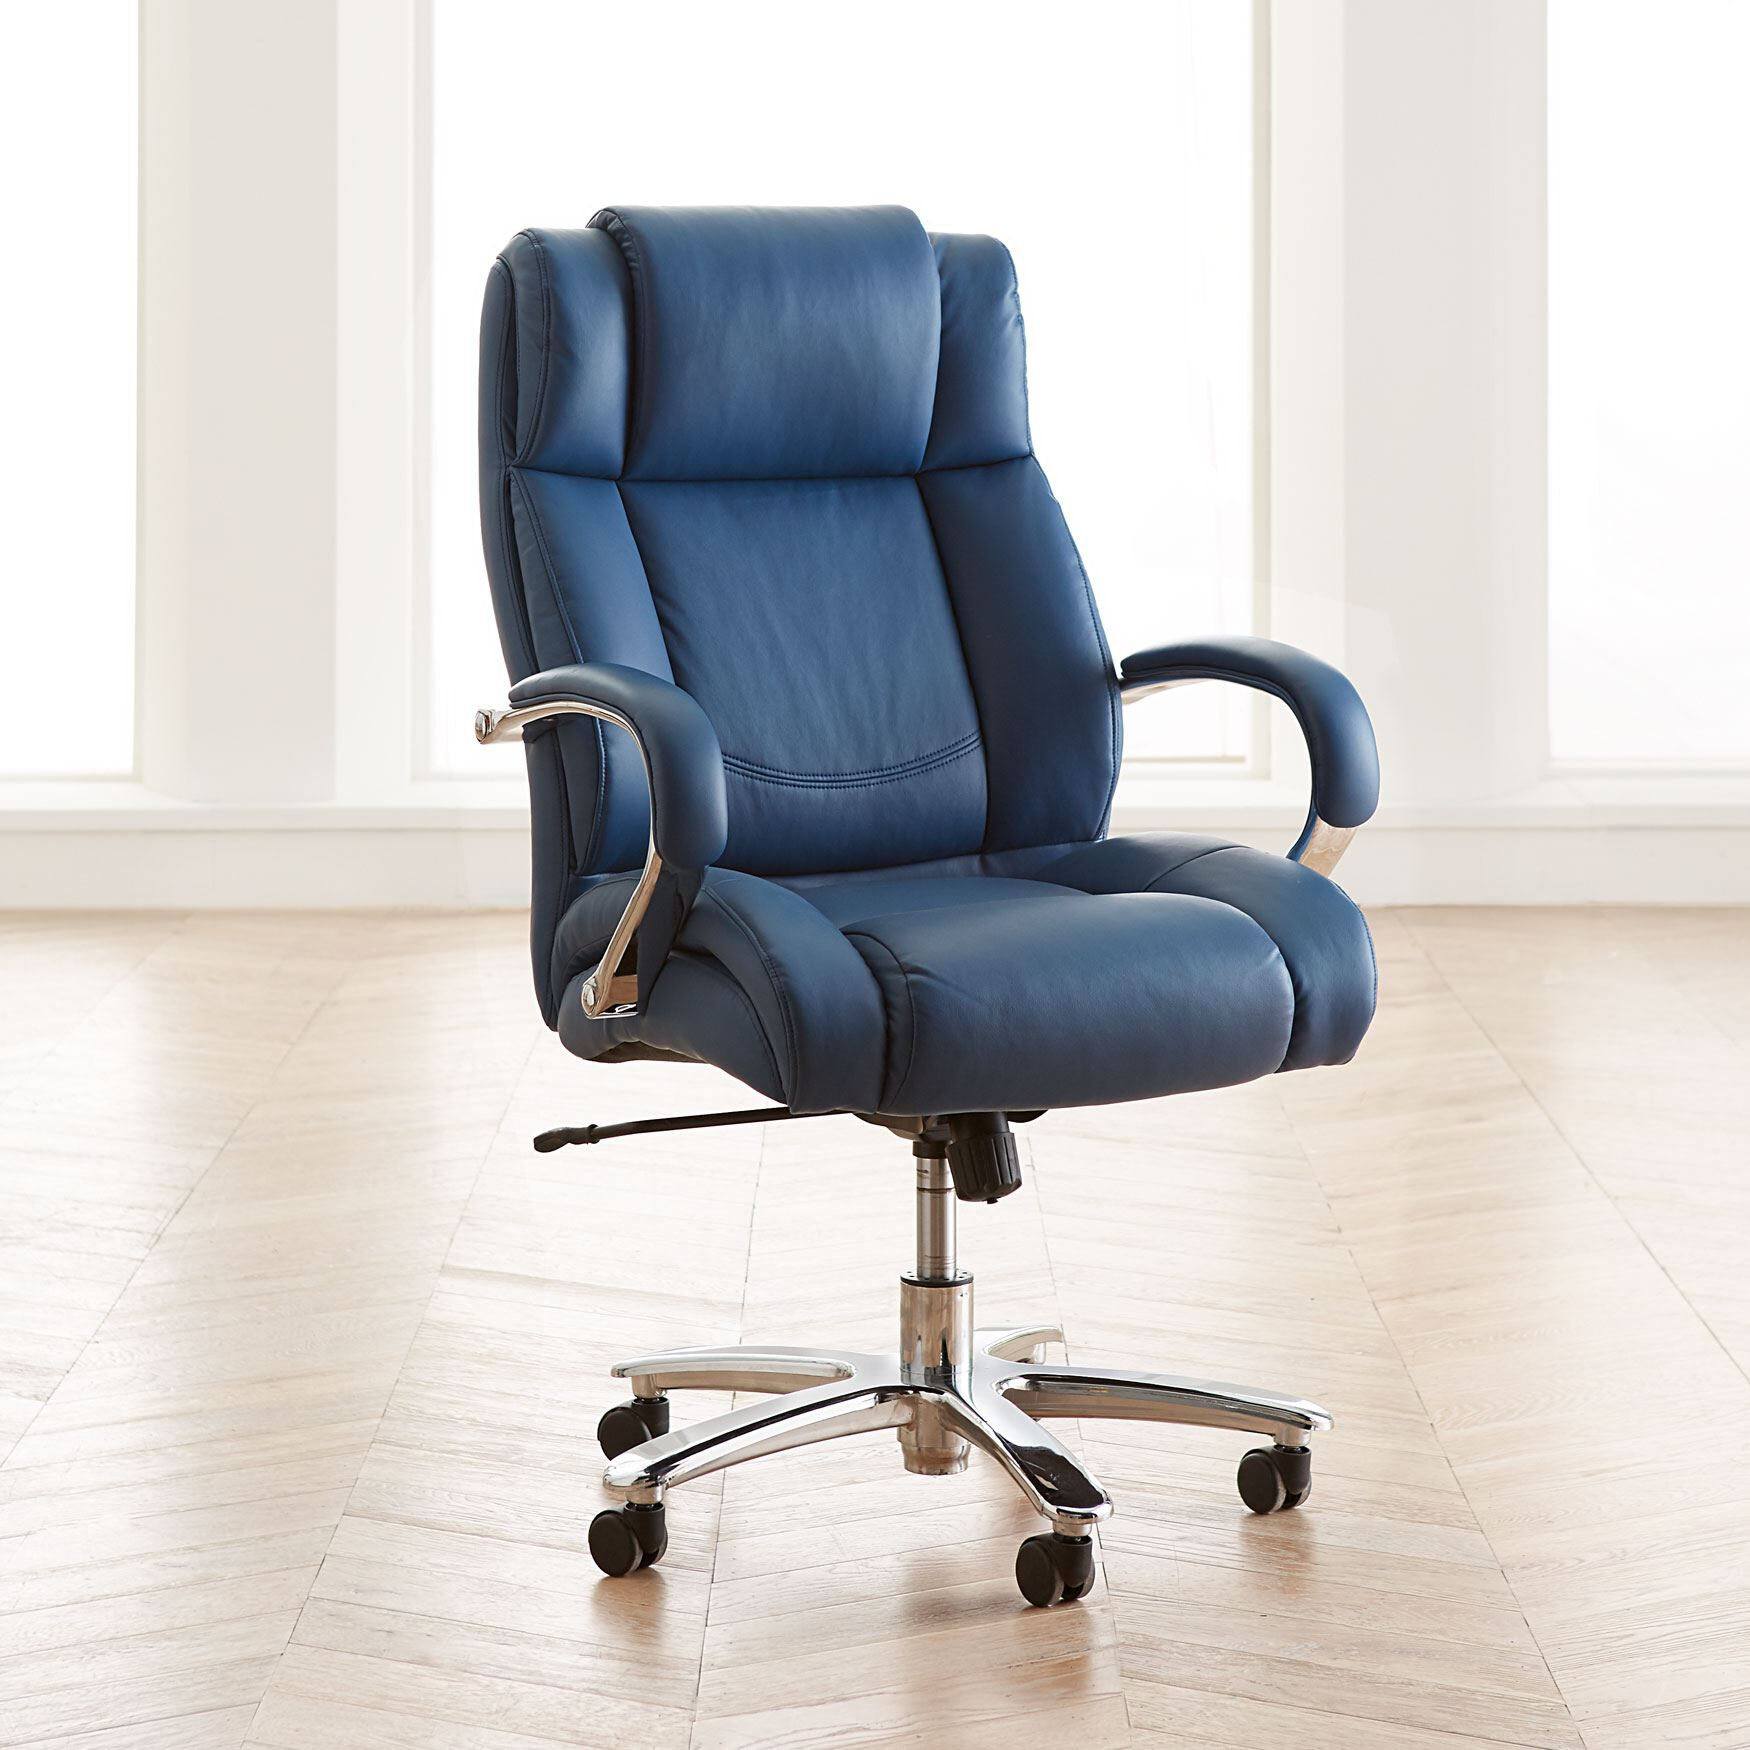 Extra Wide Chrome Finish Office Chair